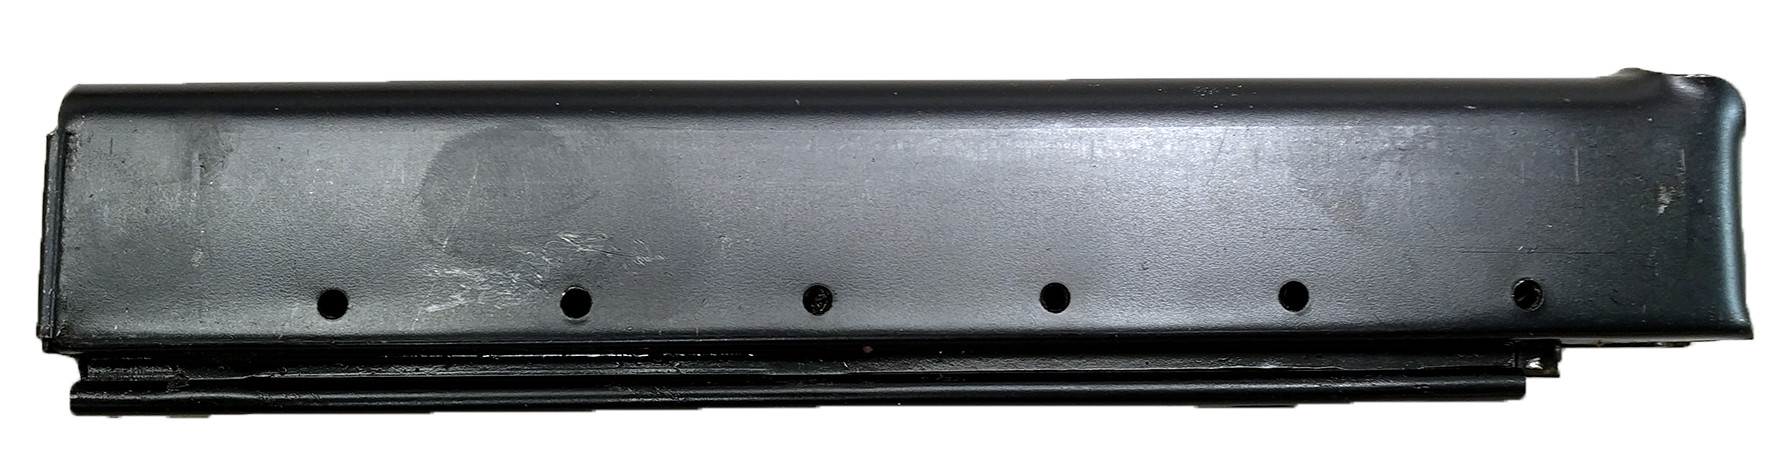 Thompson SMG 30rd Magazine, Crosby Co, *Very Good to Excellent*